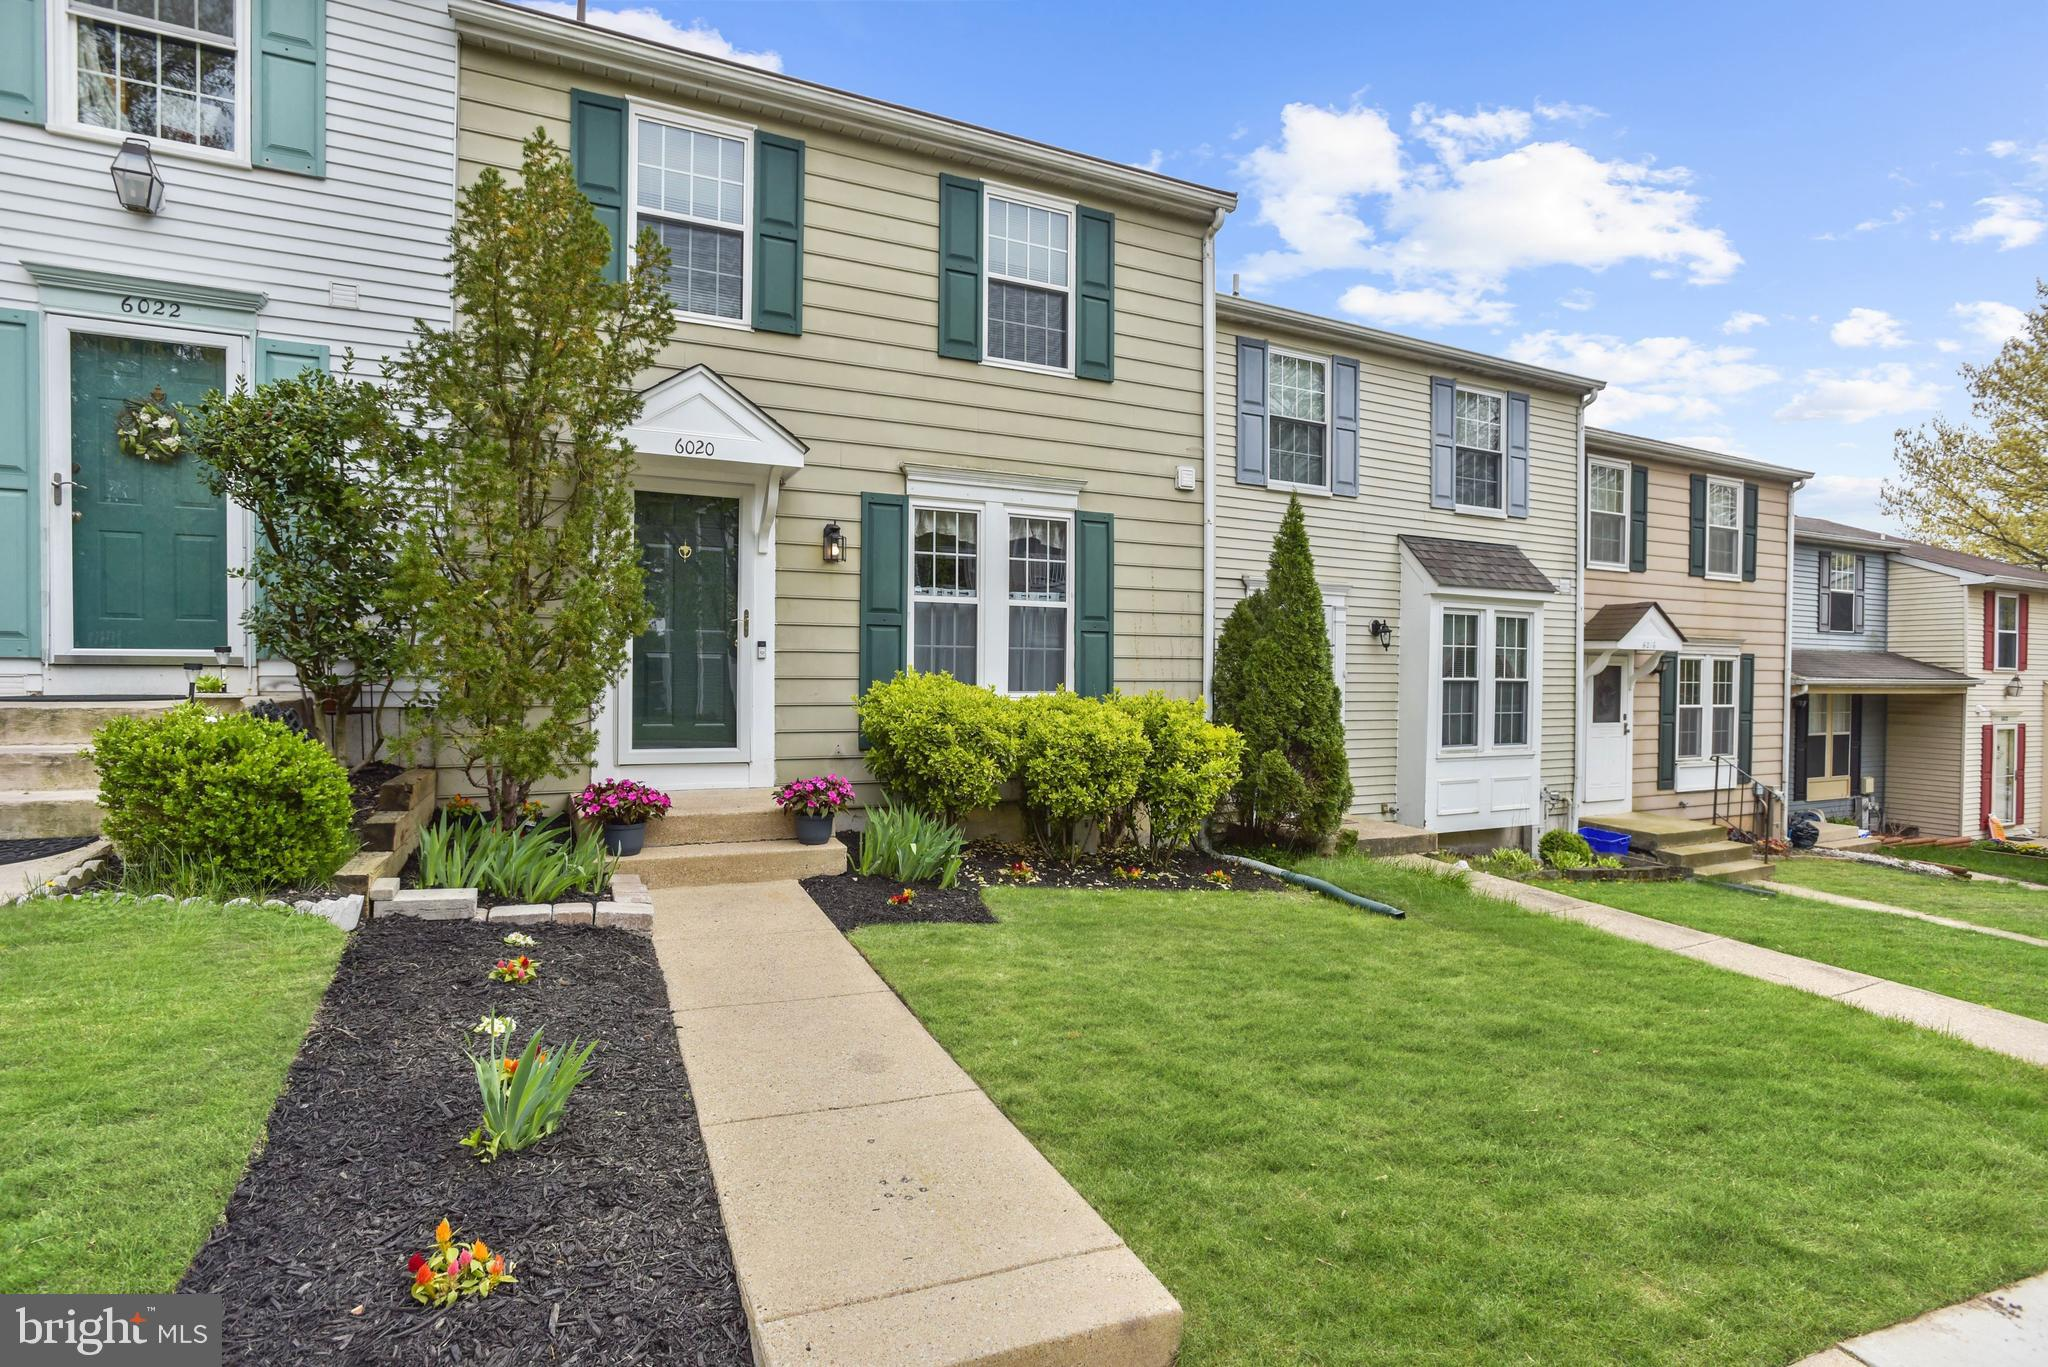 Beautiful Colonial townhome located in the Rockburn Commons community of Elkridge boasts updates inc